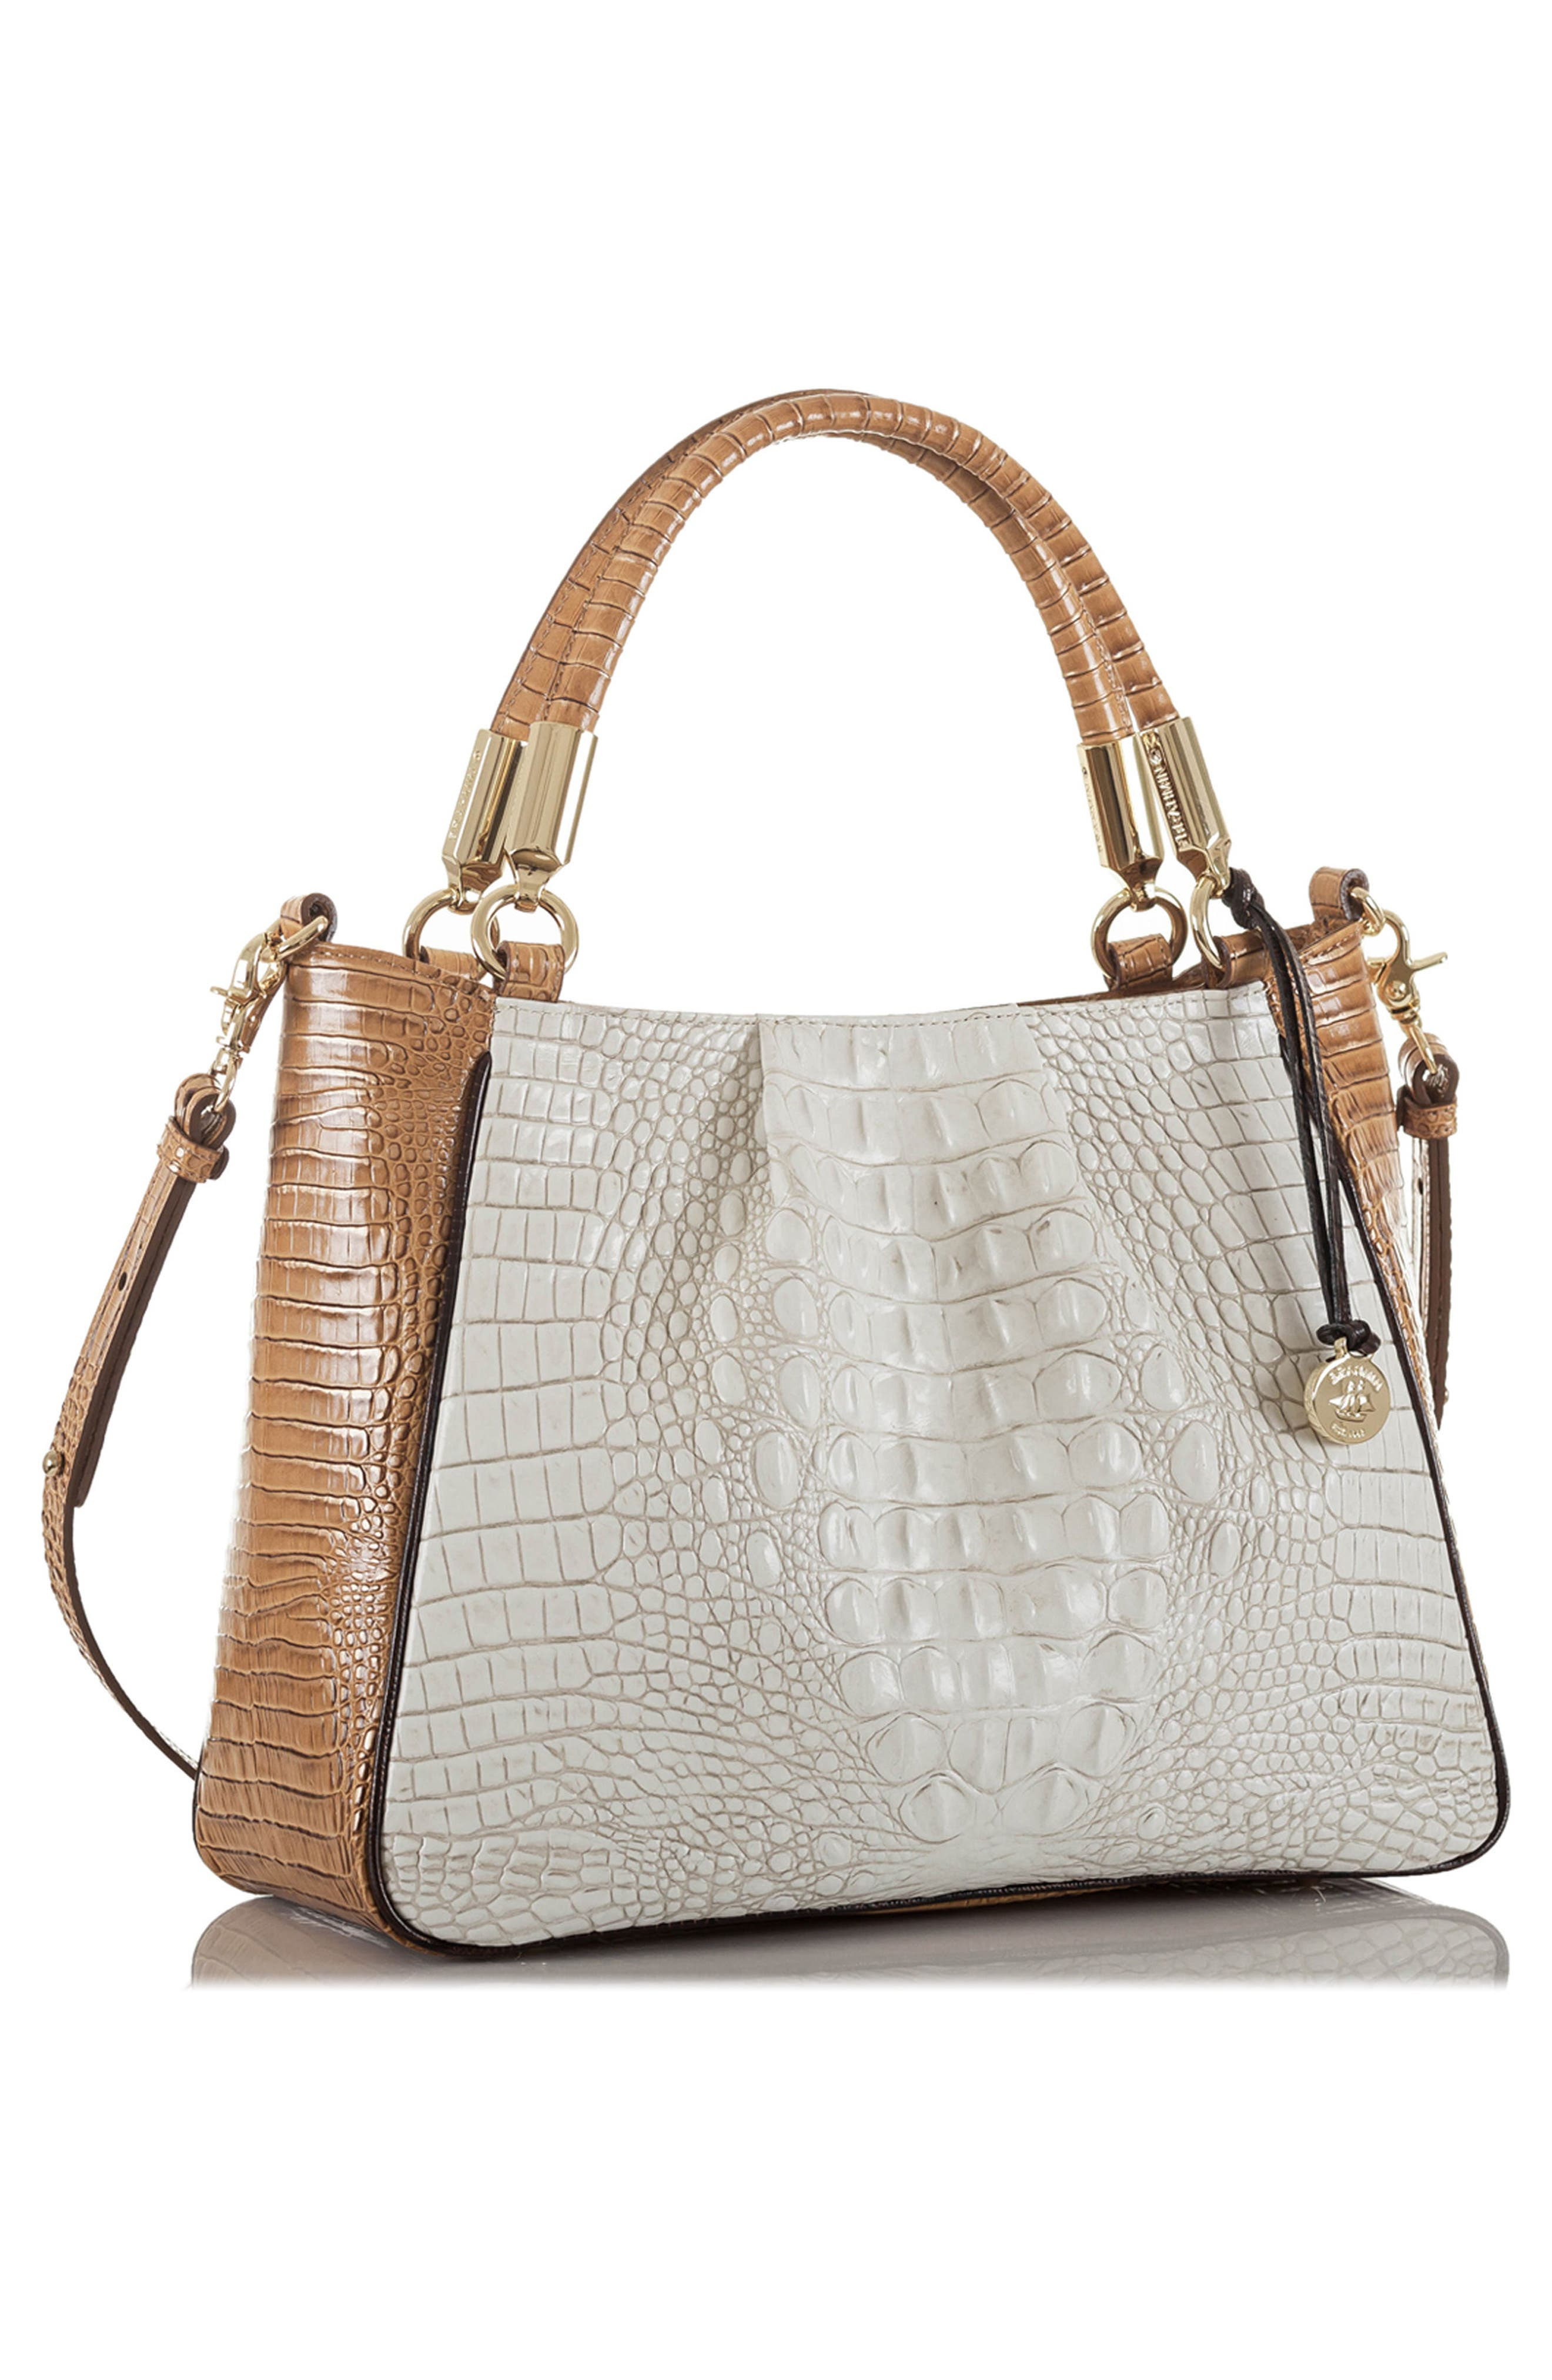 Ruby Croc Embossed Leather Satchel,                             Alternate thumbnail 4, color,                             Coconut Kedima